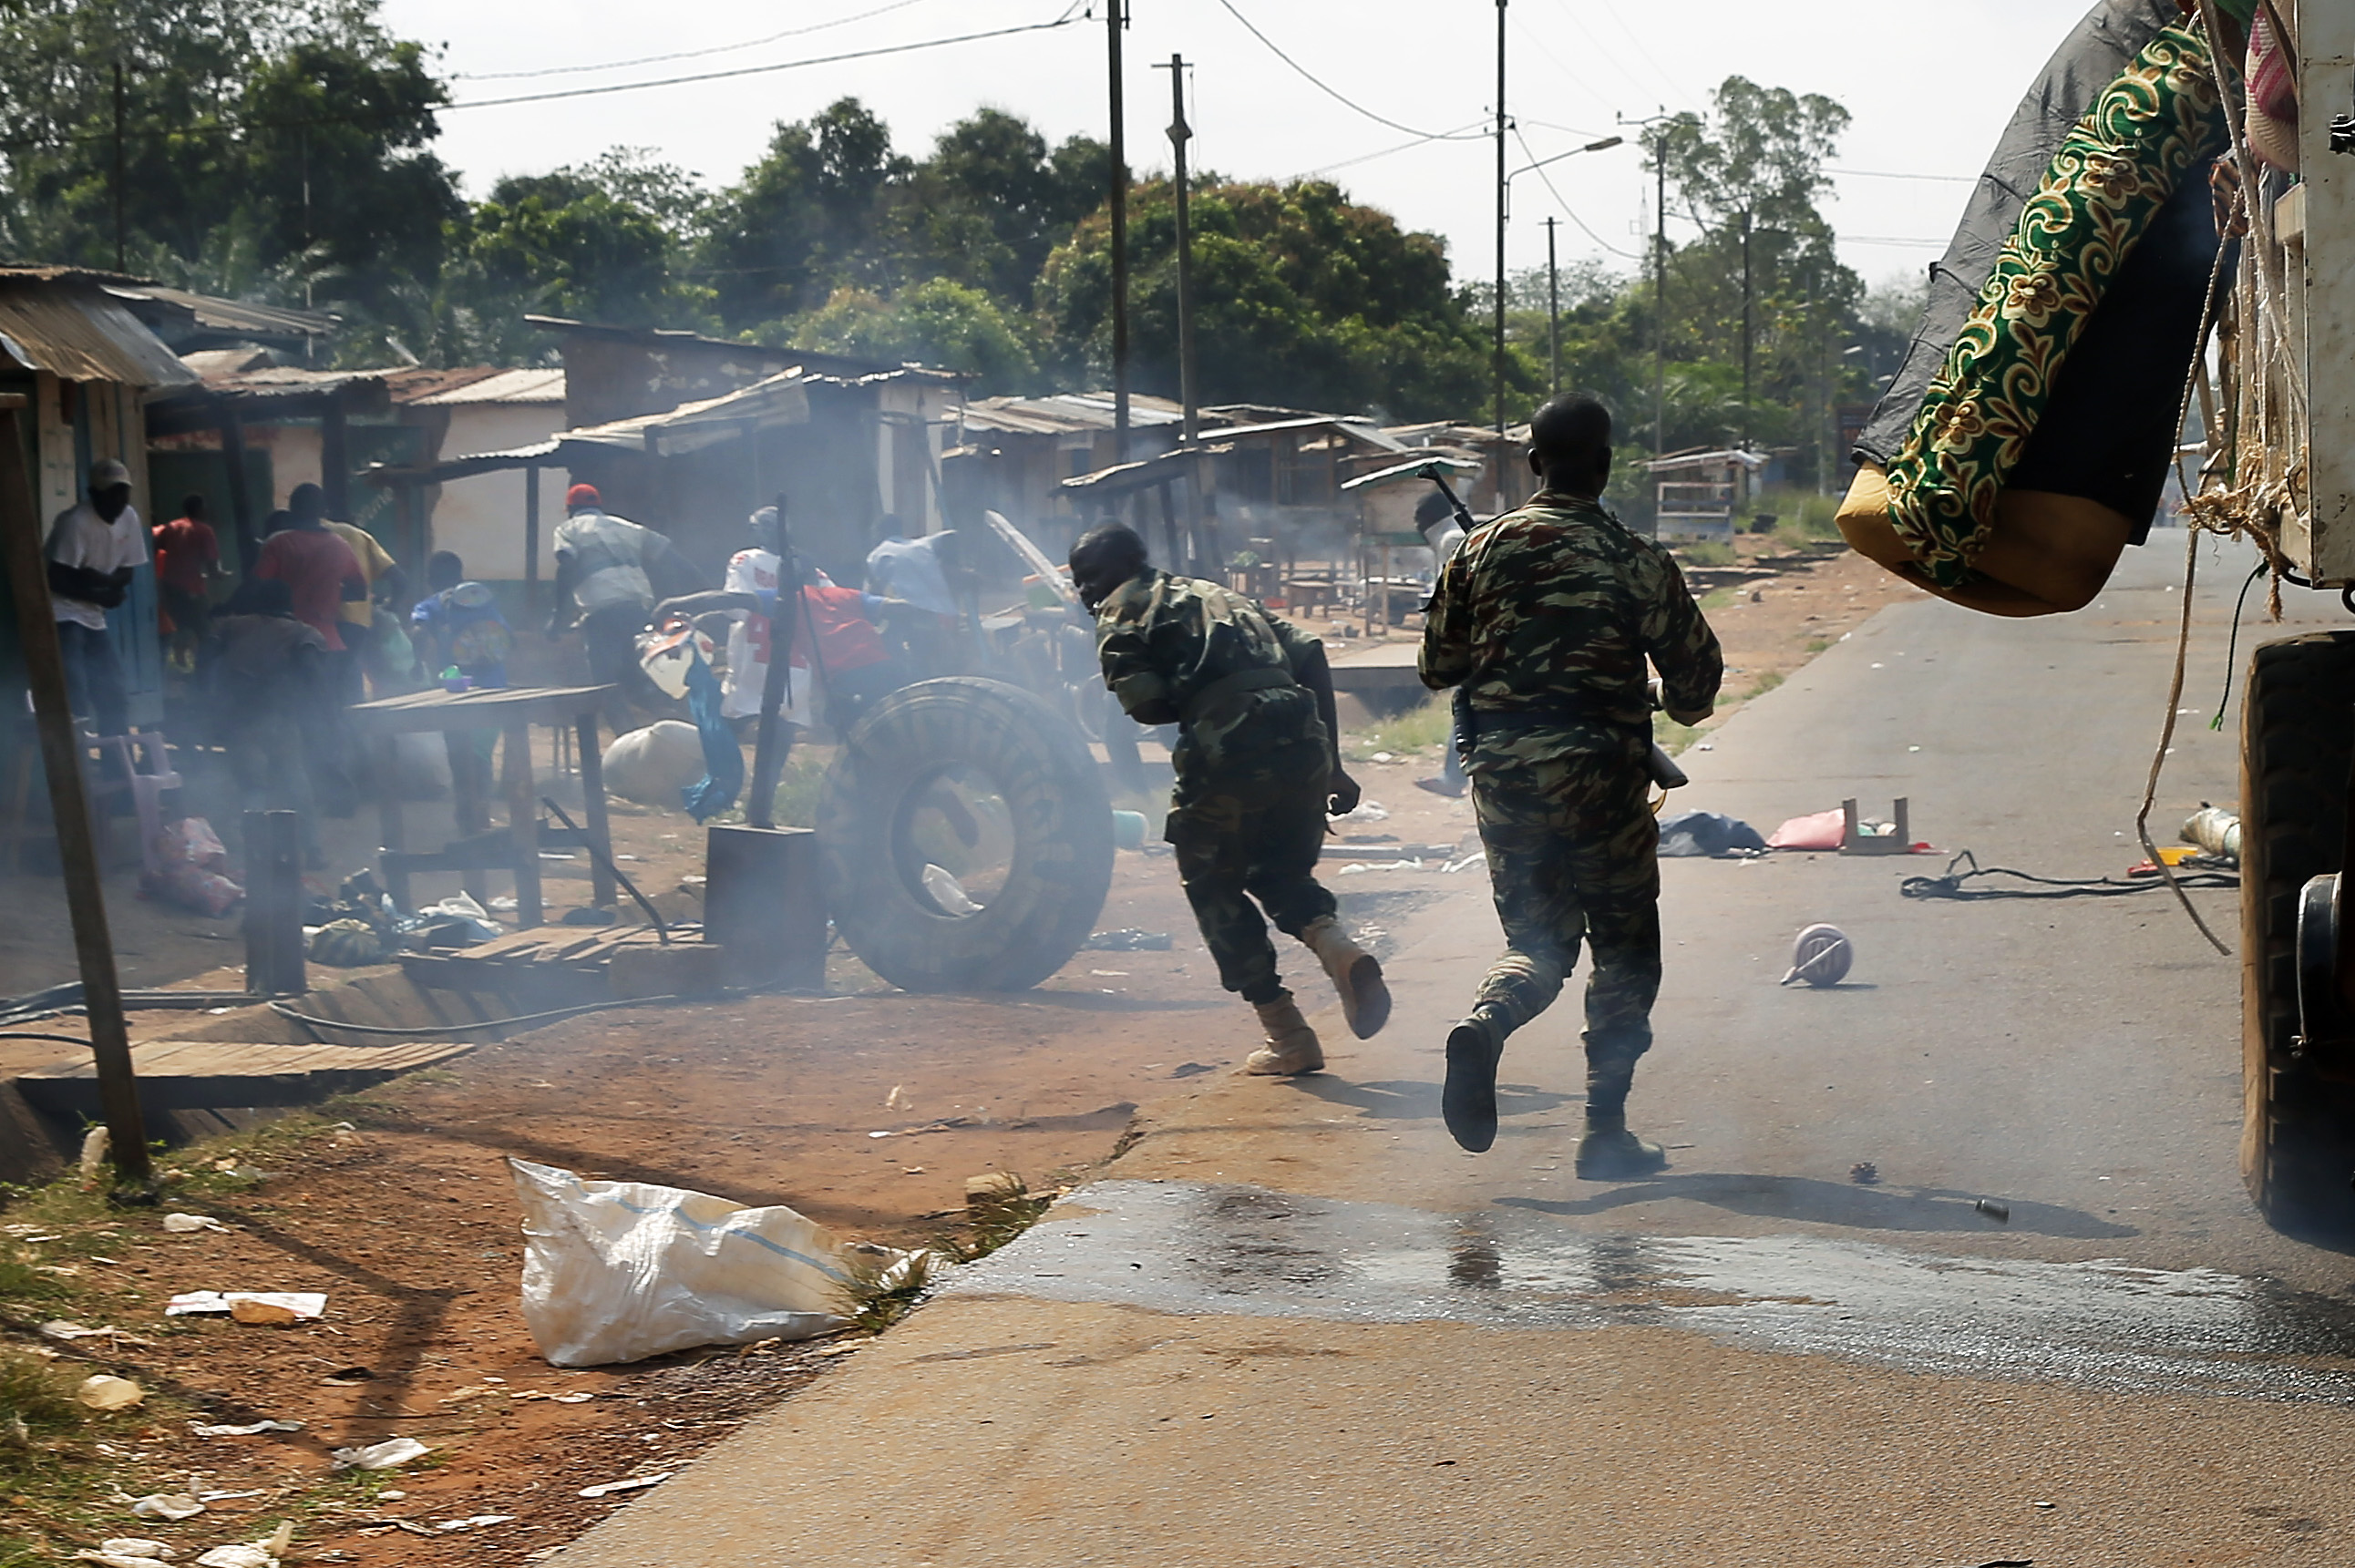 CAR: Violence and killings in capital Bangui threaten fragile peace